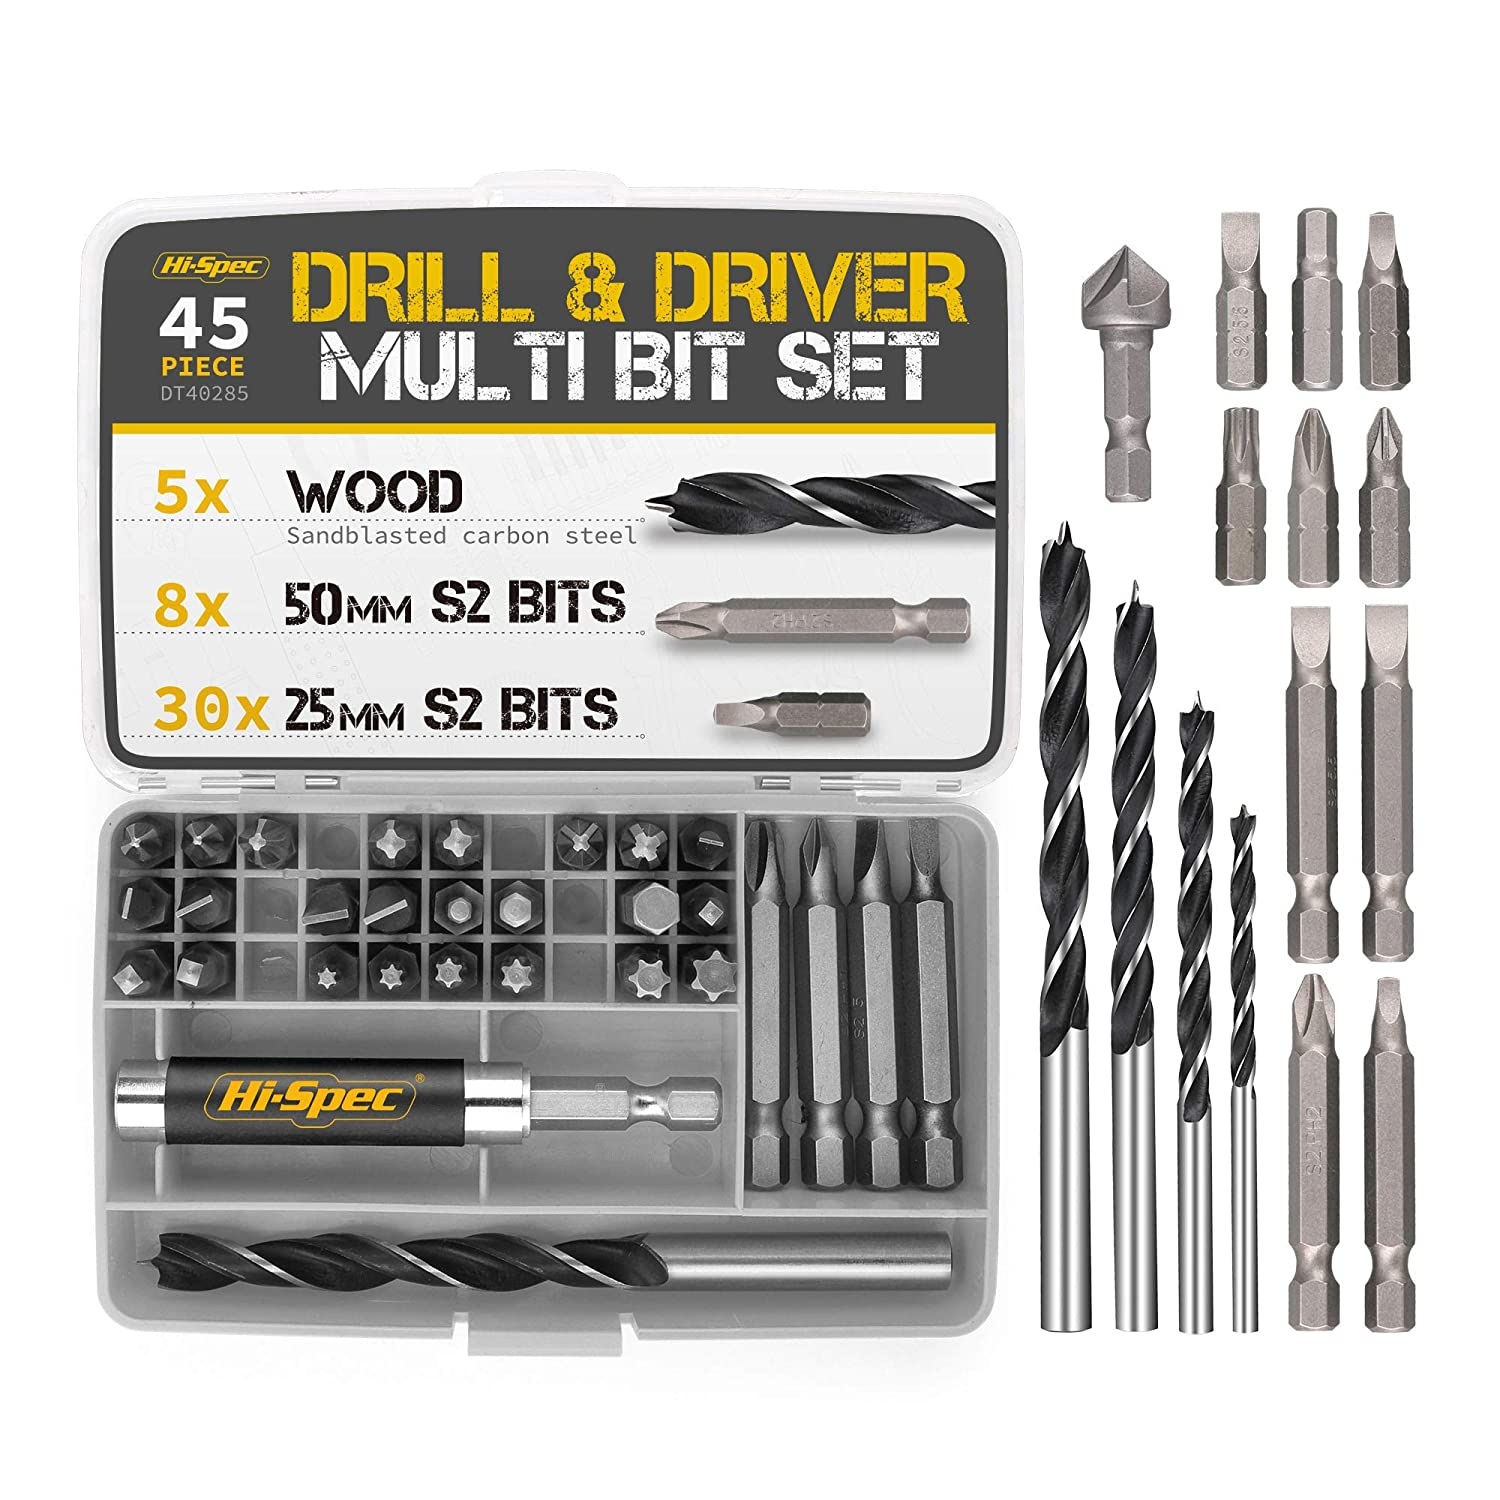 "Hi-Spec 1/4"" Hex Shank Screw Driver Bits & Drills Set. S2 Steel Bits & Drill Driver Power Tool Accessories for DIY Repairs, Installing Fixtures & Fittings, Screwing & Fastening"